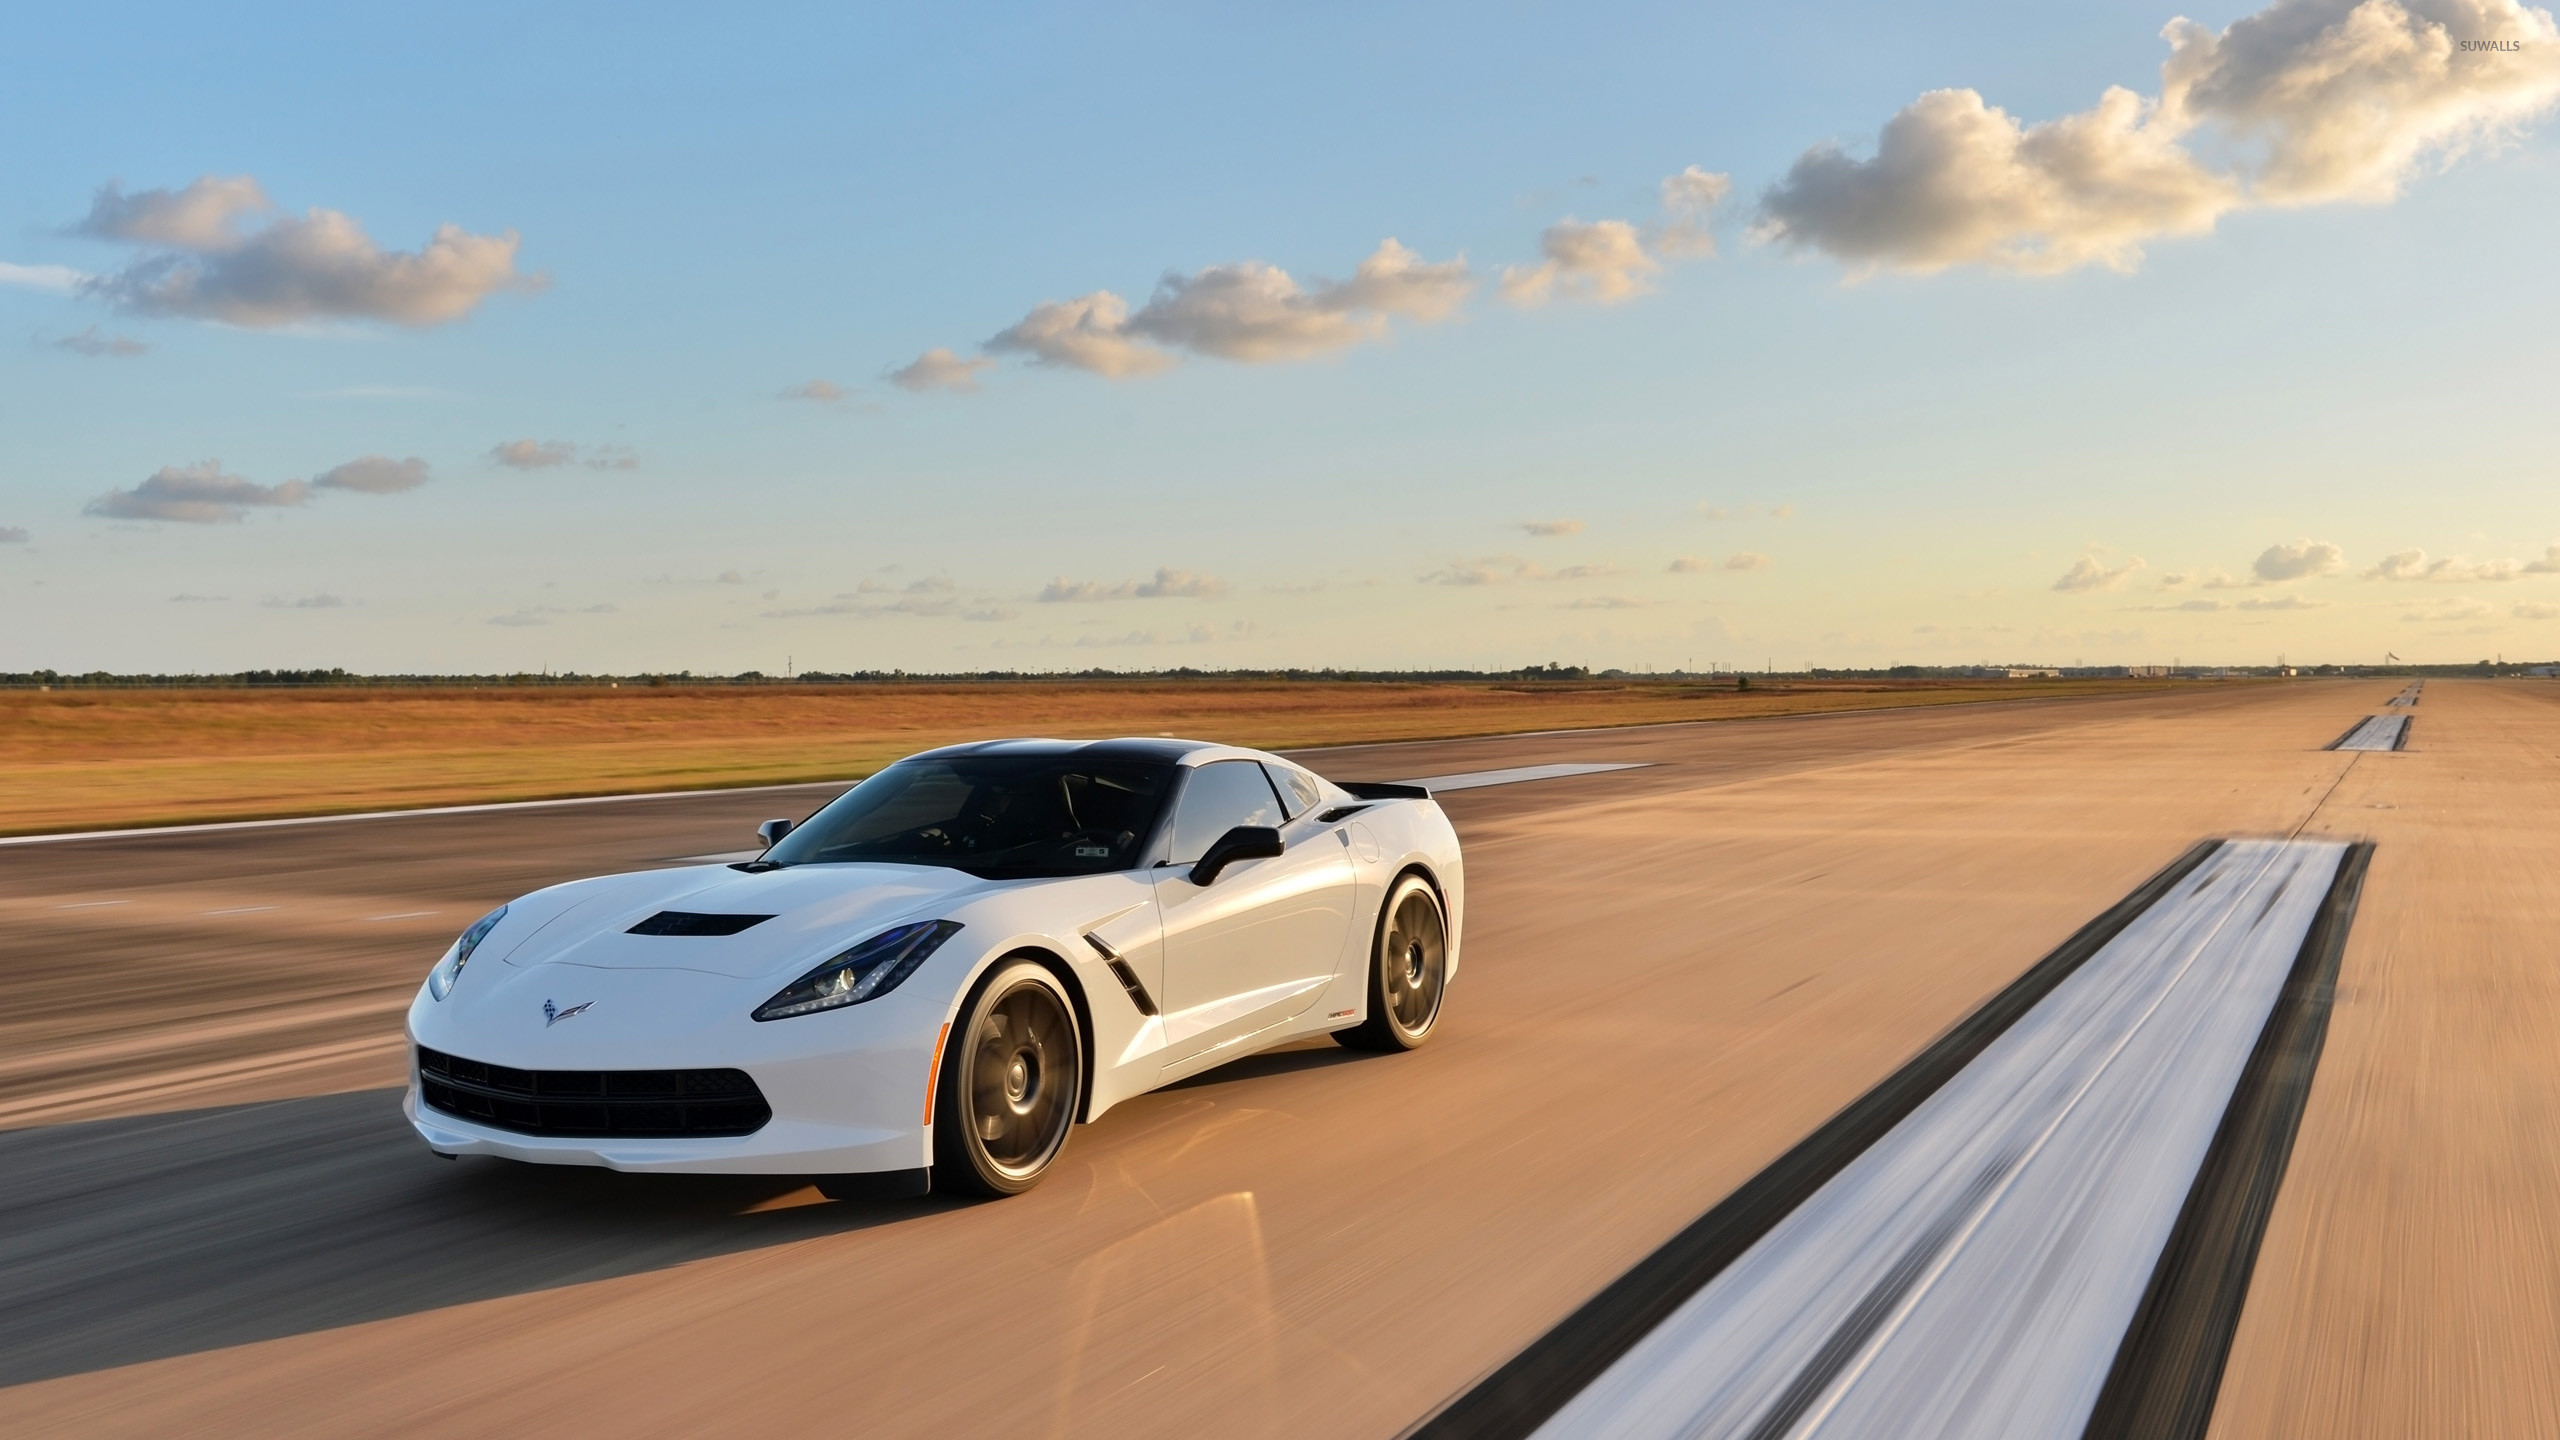 2560x1440 White Chevrolet Corvette C7 Stingray wallpaper